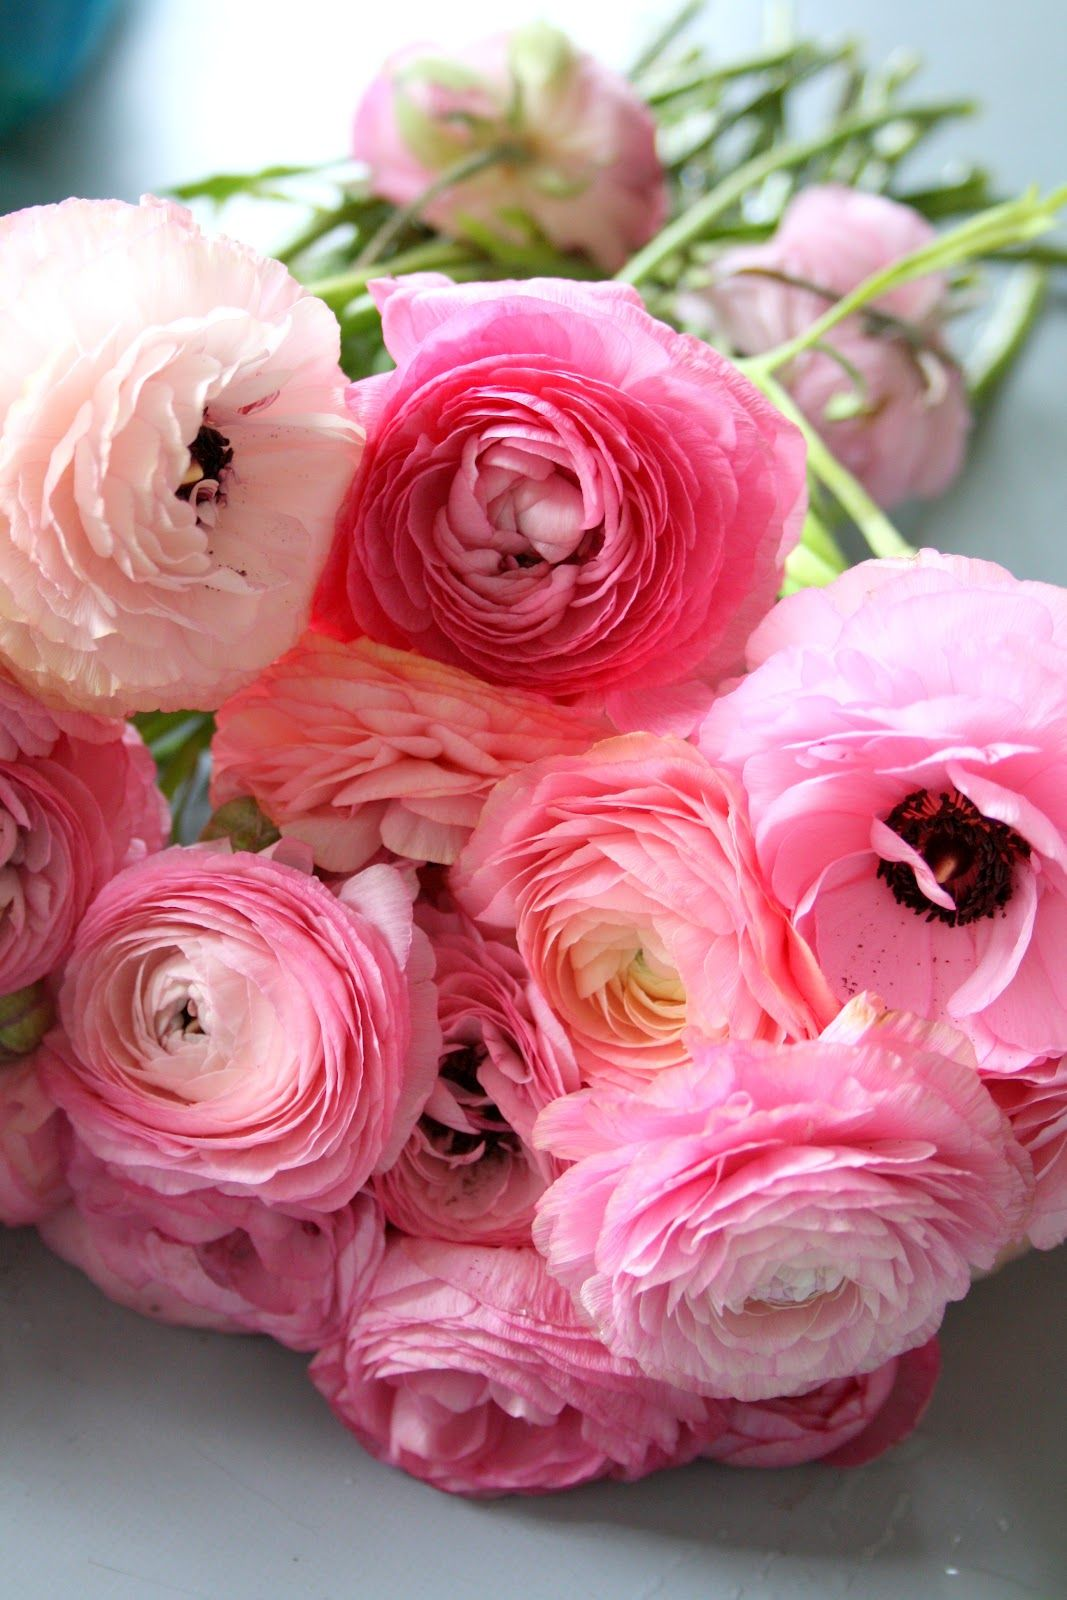 Pin by April May on Age of Innocence | Pinterest | Ranunculus ...